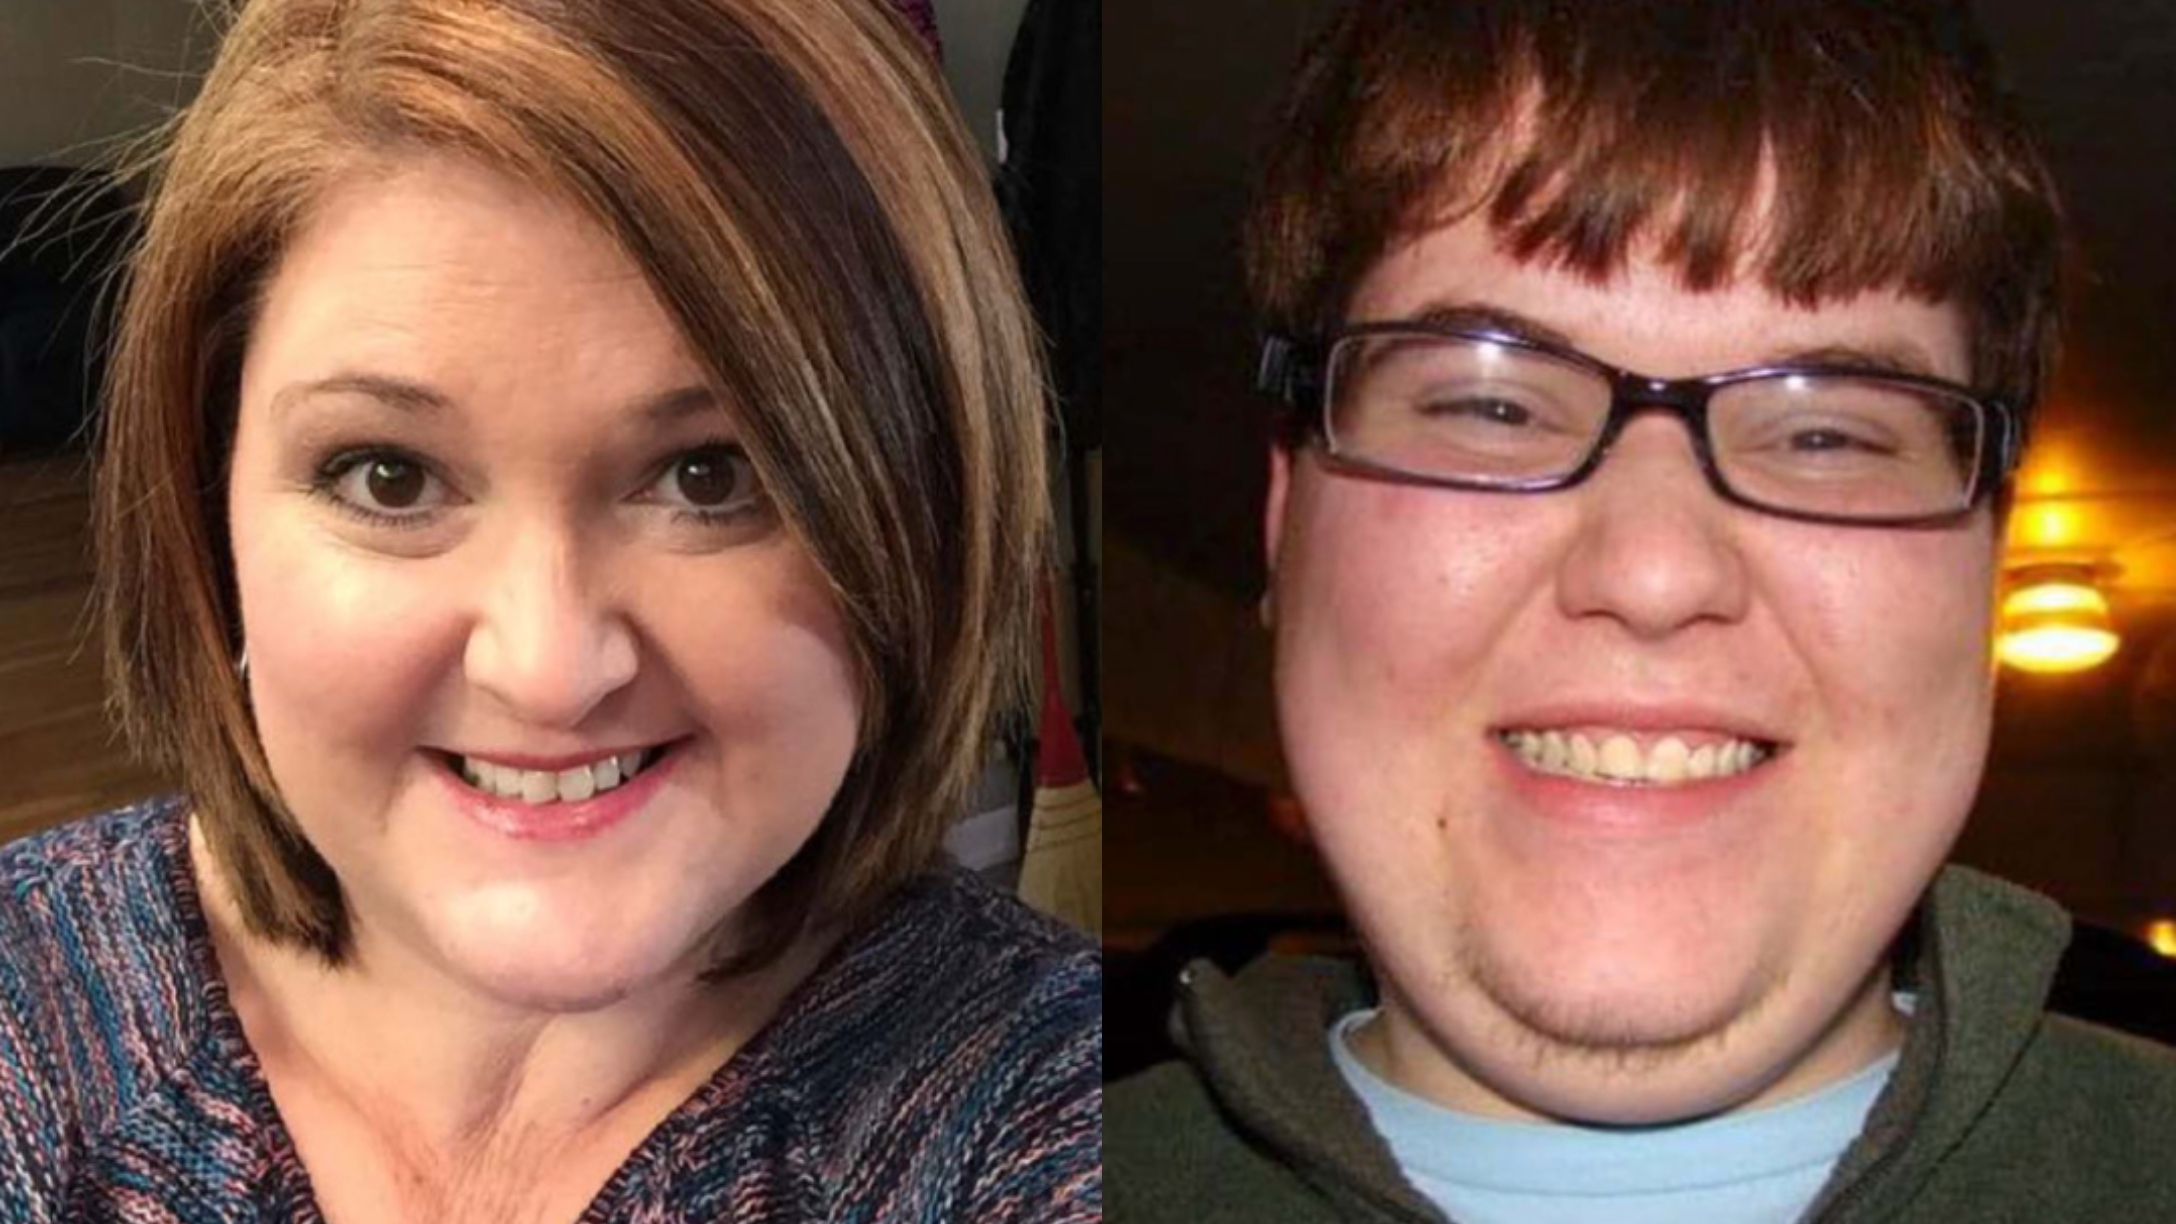 Mom Who Lost Her Son to COVID Shares His Sobering Last Words: 'It's Not a Hoax'